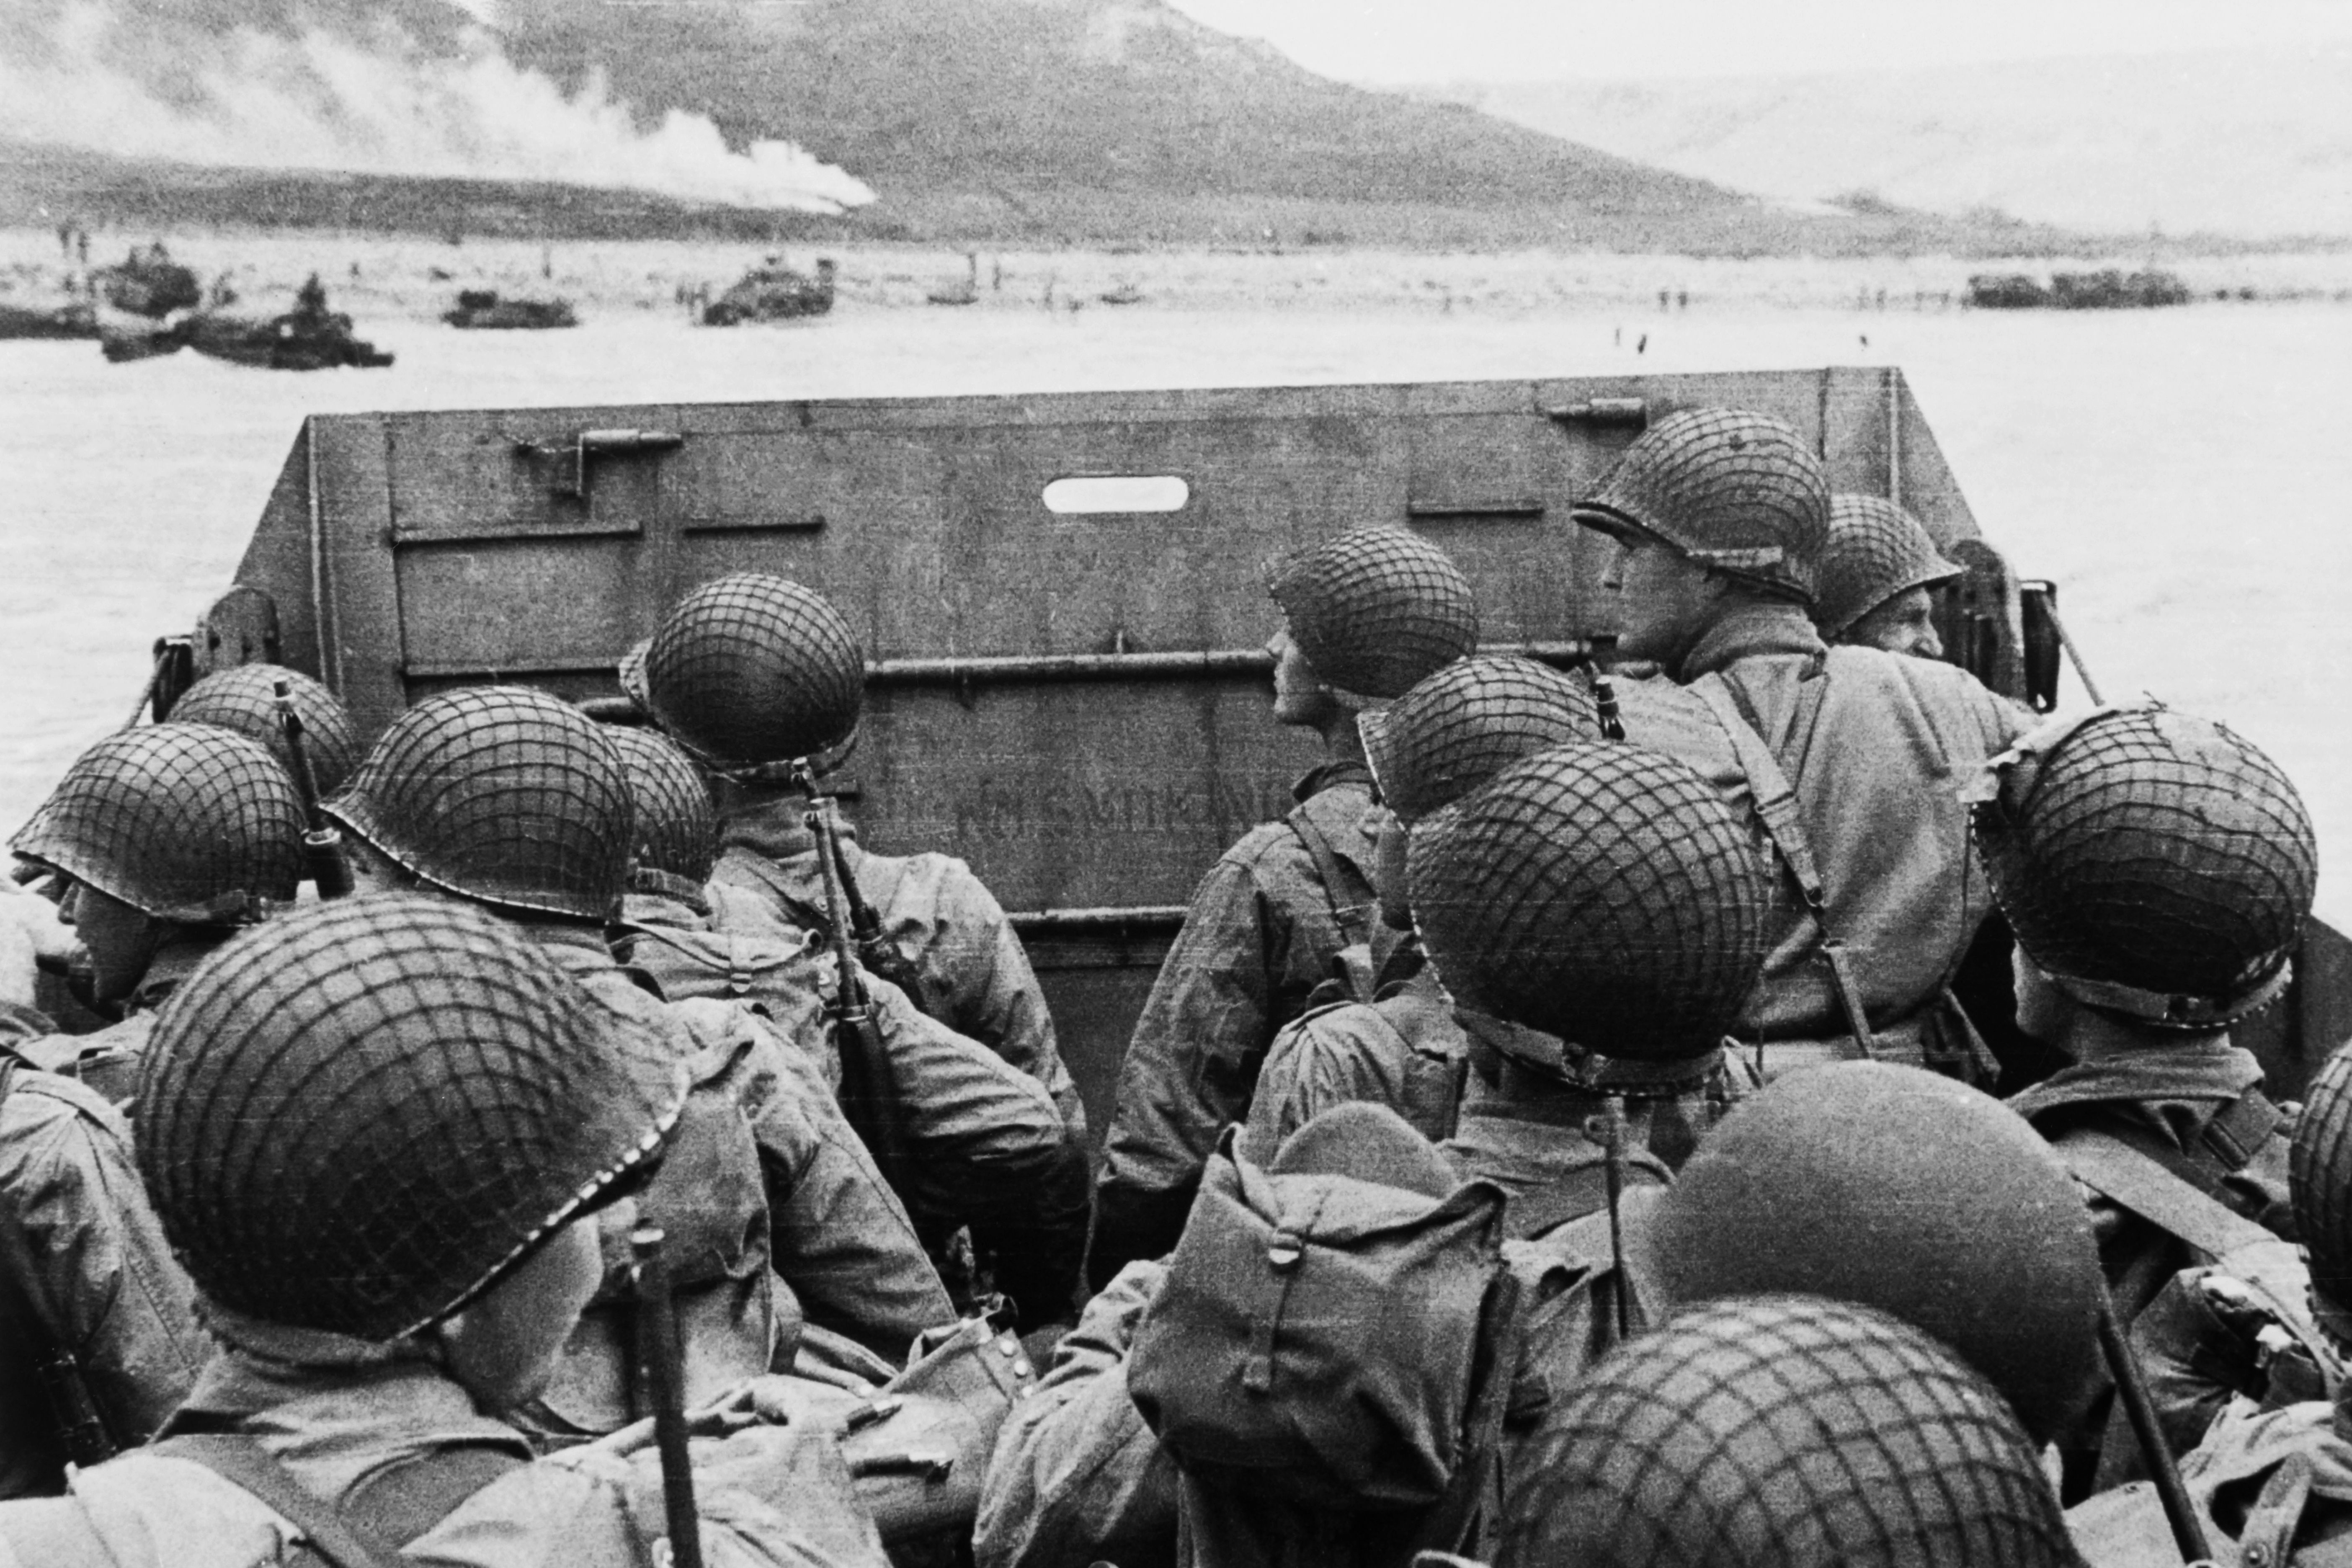 American assault troops in a landing craft huddle behind the shield 06 June 1944 approaching Utah Beach while Allied forces are storming the Normandy beaches on D-Day. (Photo by US Army Photo/AFP/Getty Images)